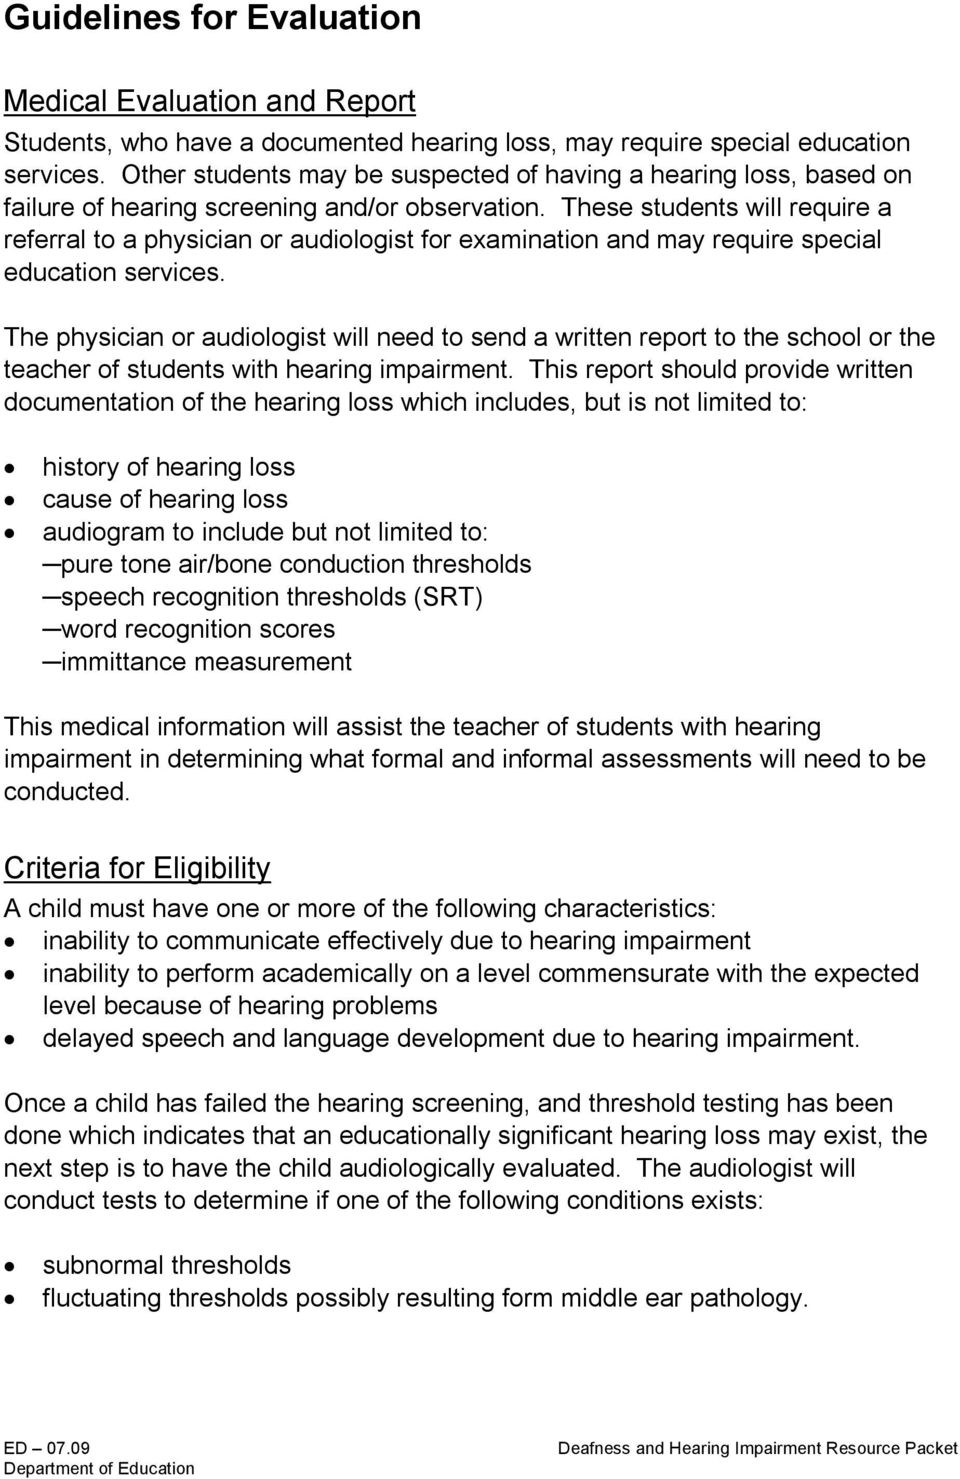 These students will require a referral to a physician or audiologist for examination and may require special education services.